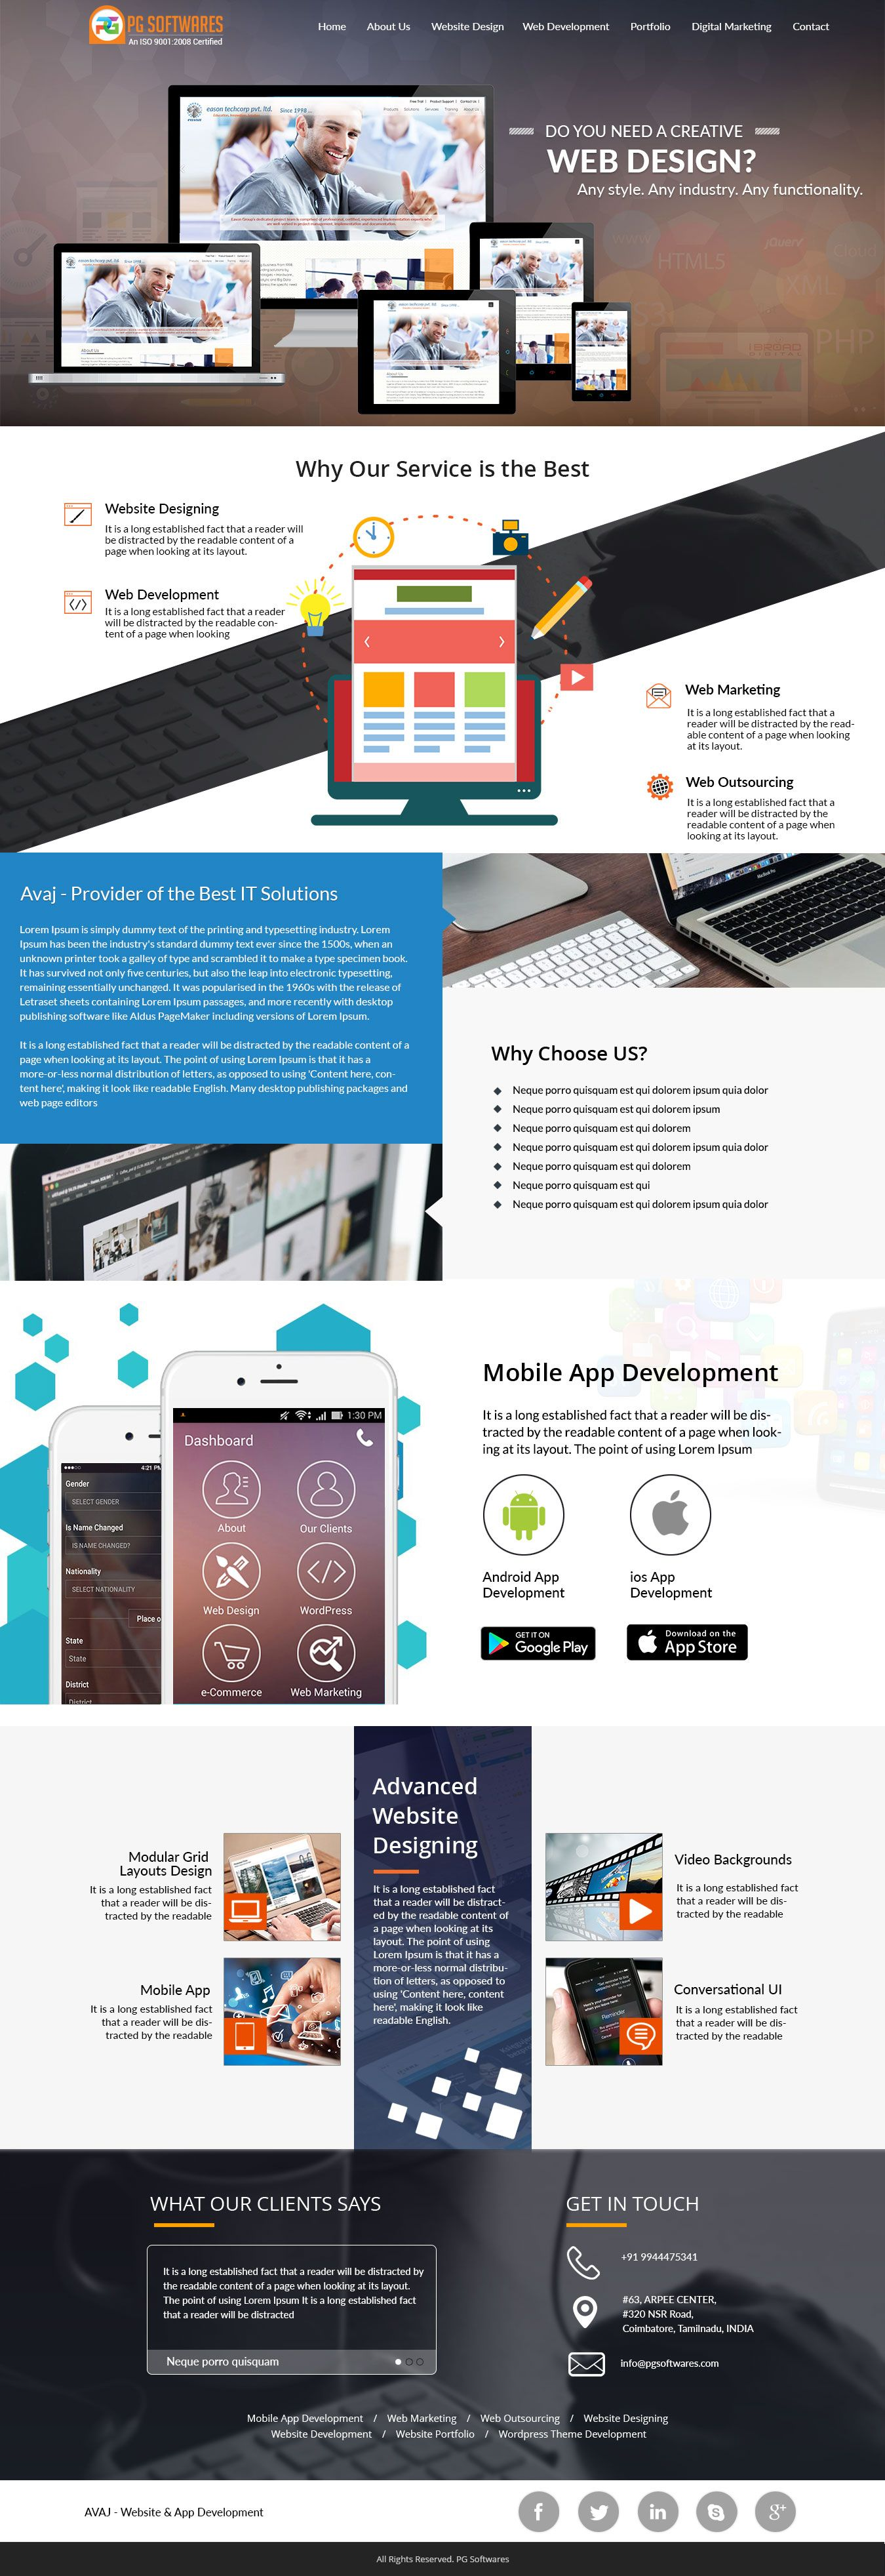 Pg Softwares Is The Best Web Design Company In Coimbatore Offer Good Looking Web Design For Mobile Web Desi Web Design Creative Web Design Corporate Web Design